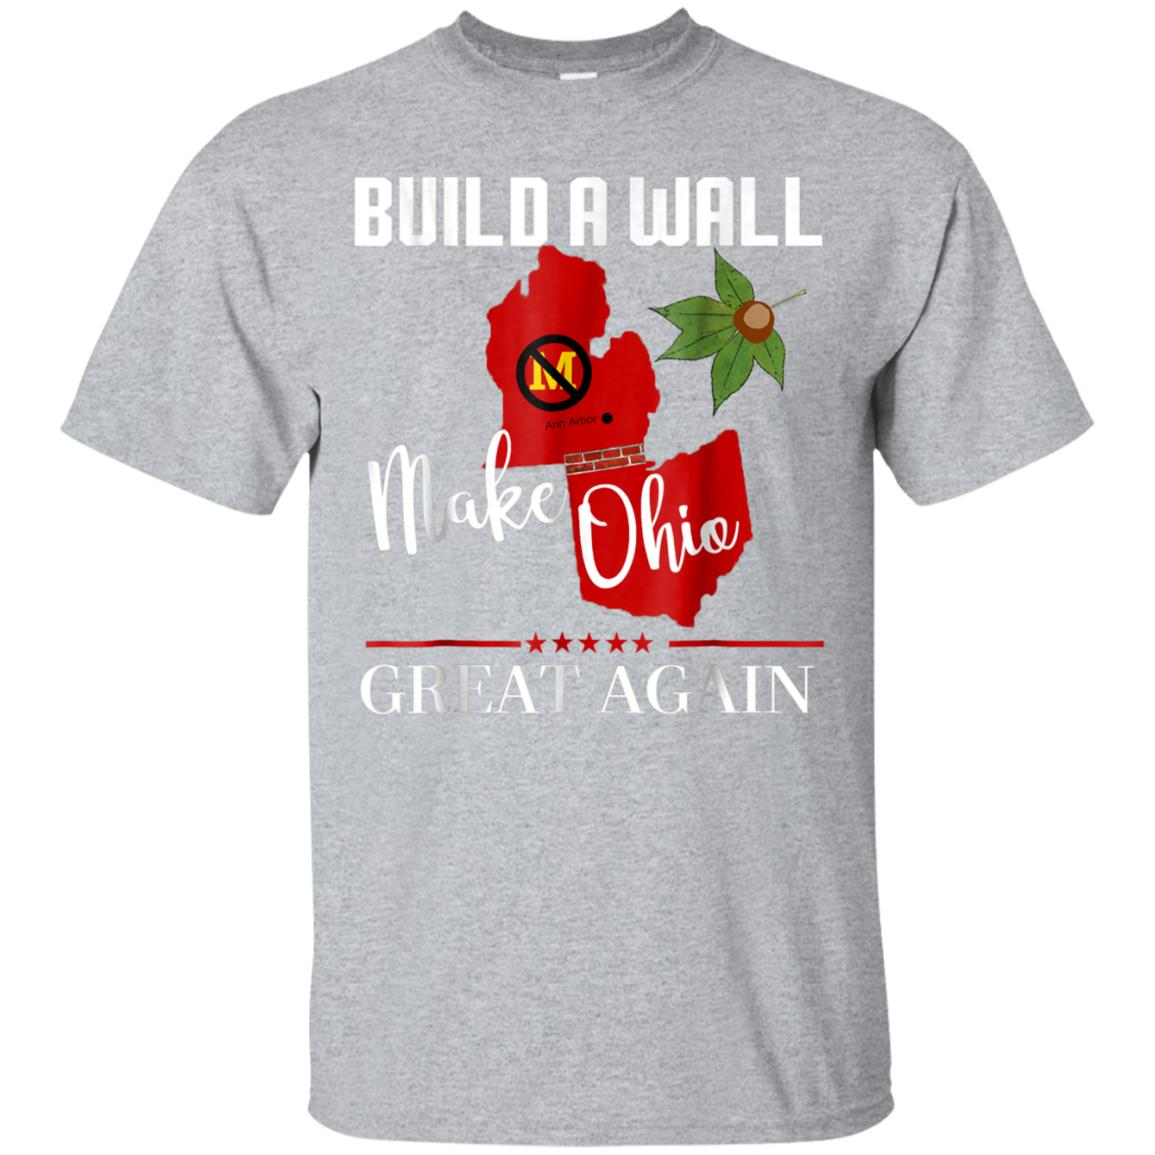 Make Ohio Great Again - Build a Wall - State Gift T-shirt 99promocode